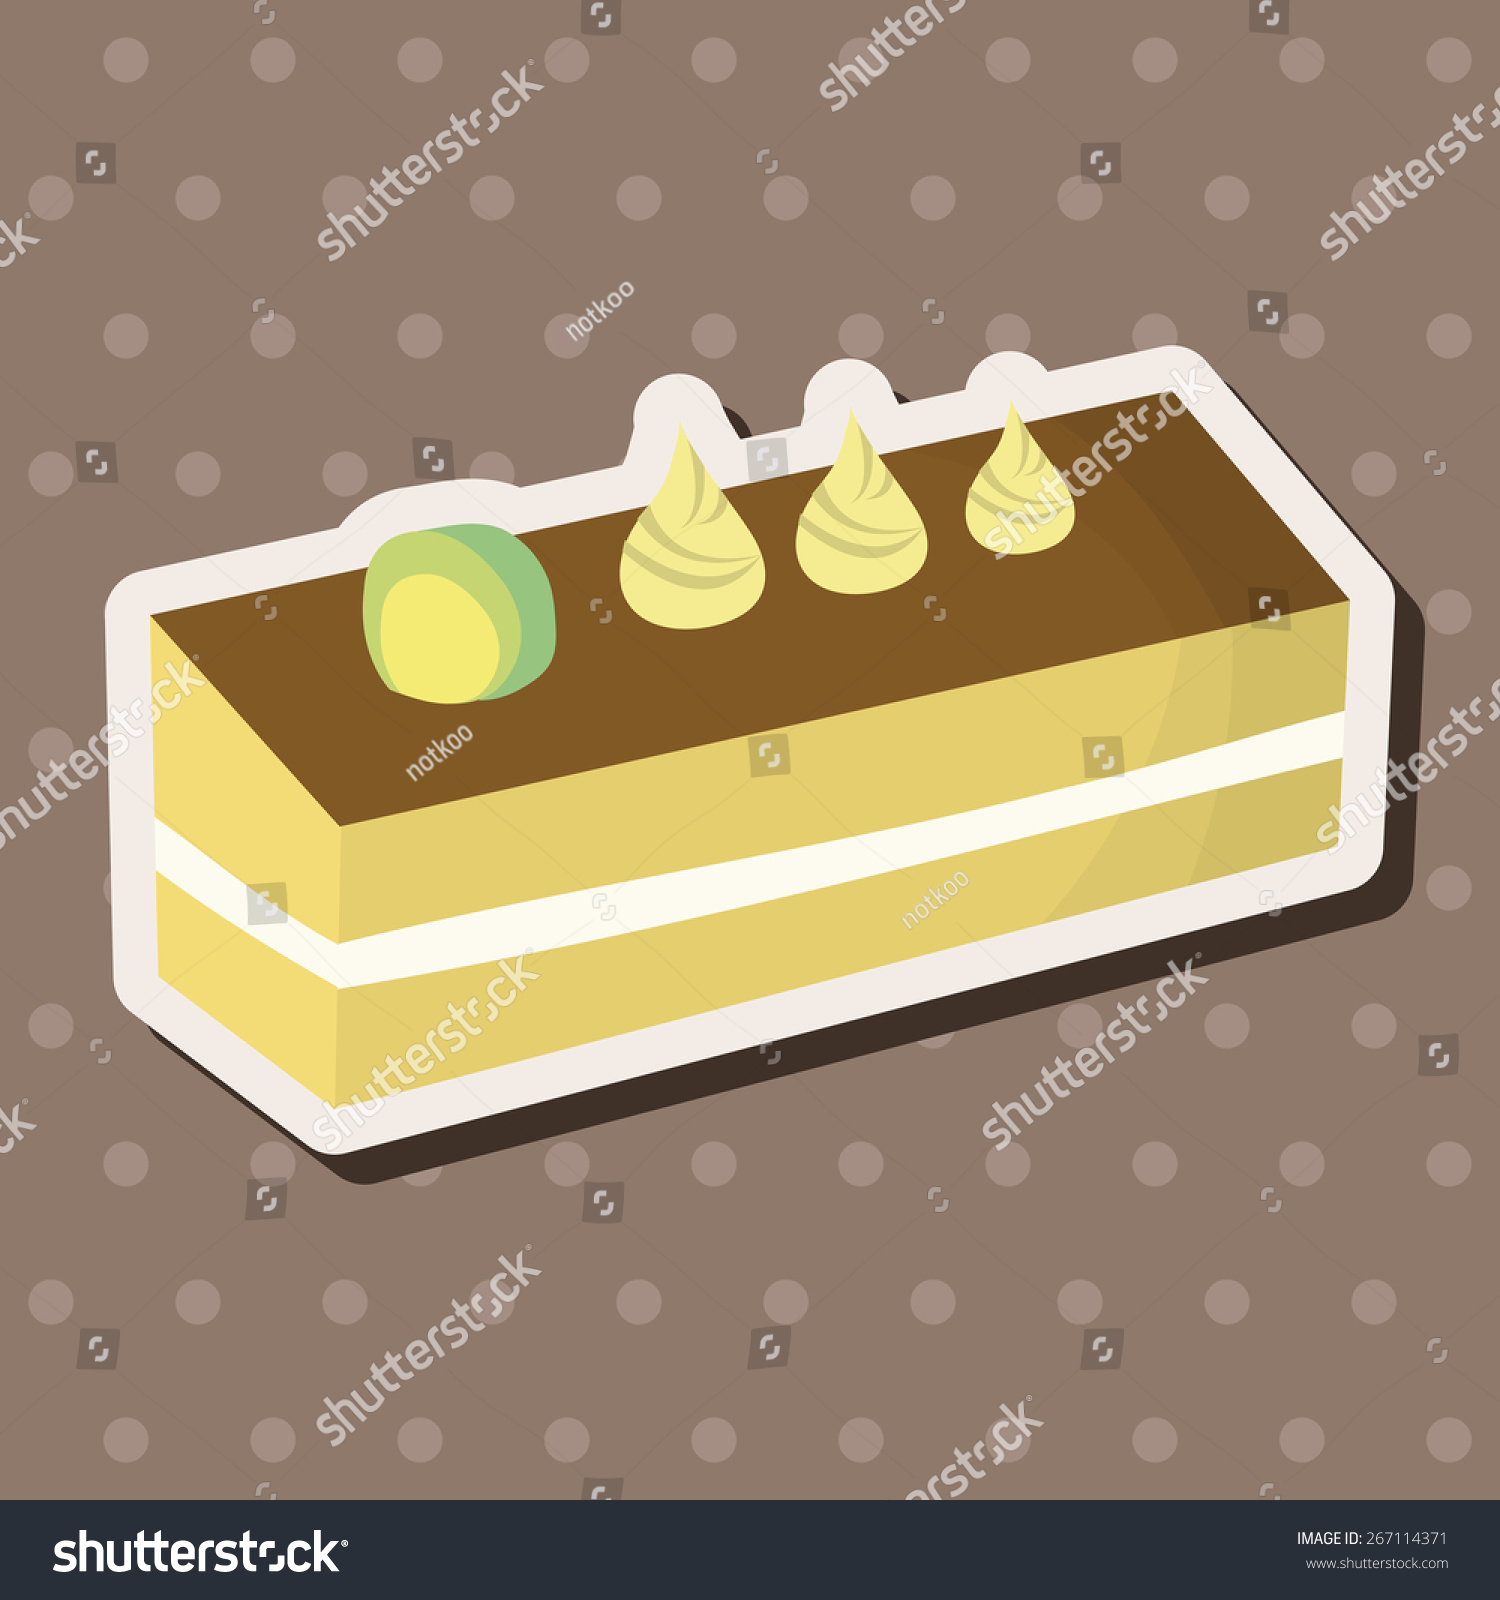 Cake Decorating Stock Images : Decorating Cake Elements Vector,Eps - 267114371 : Shutterstock